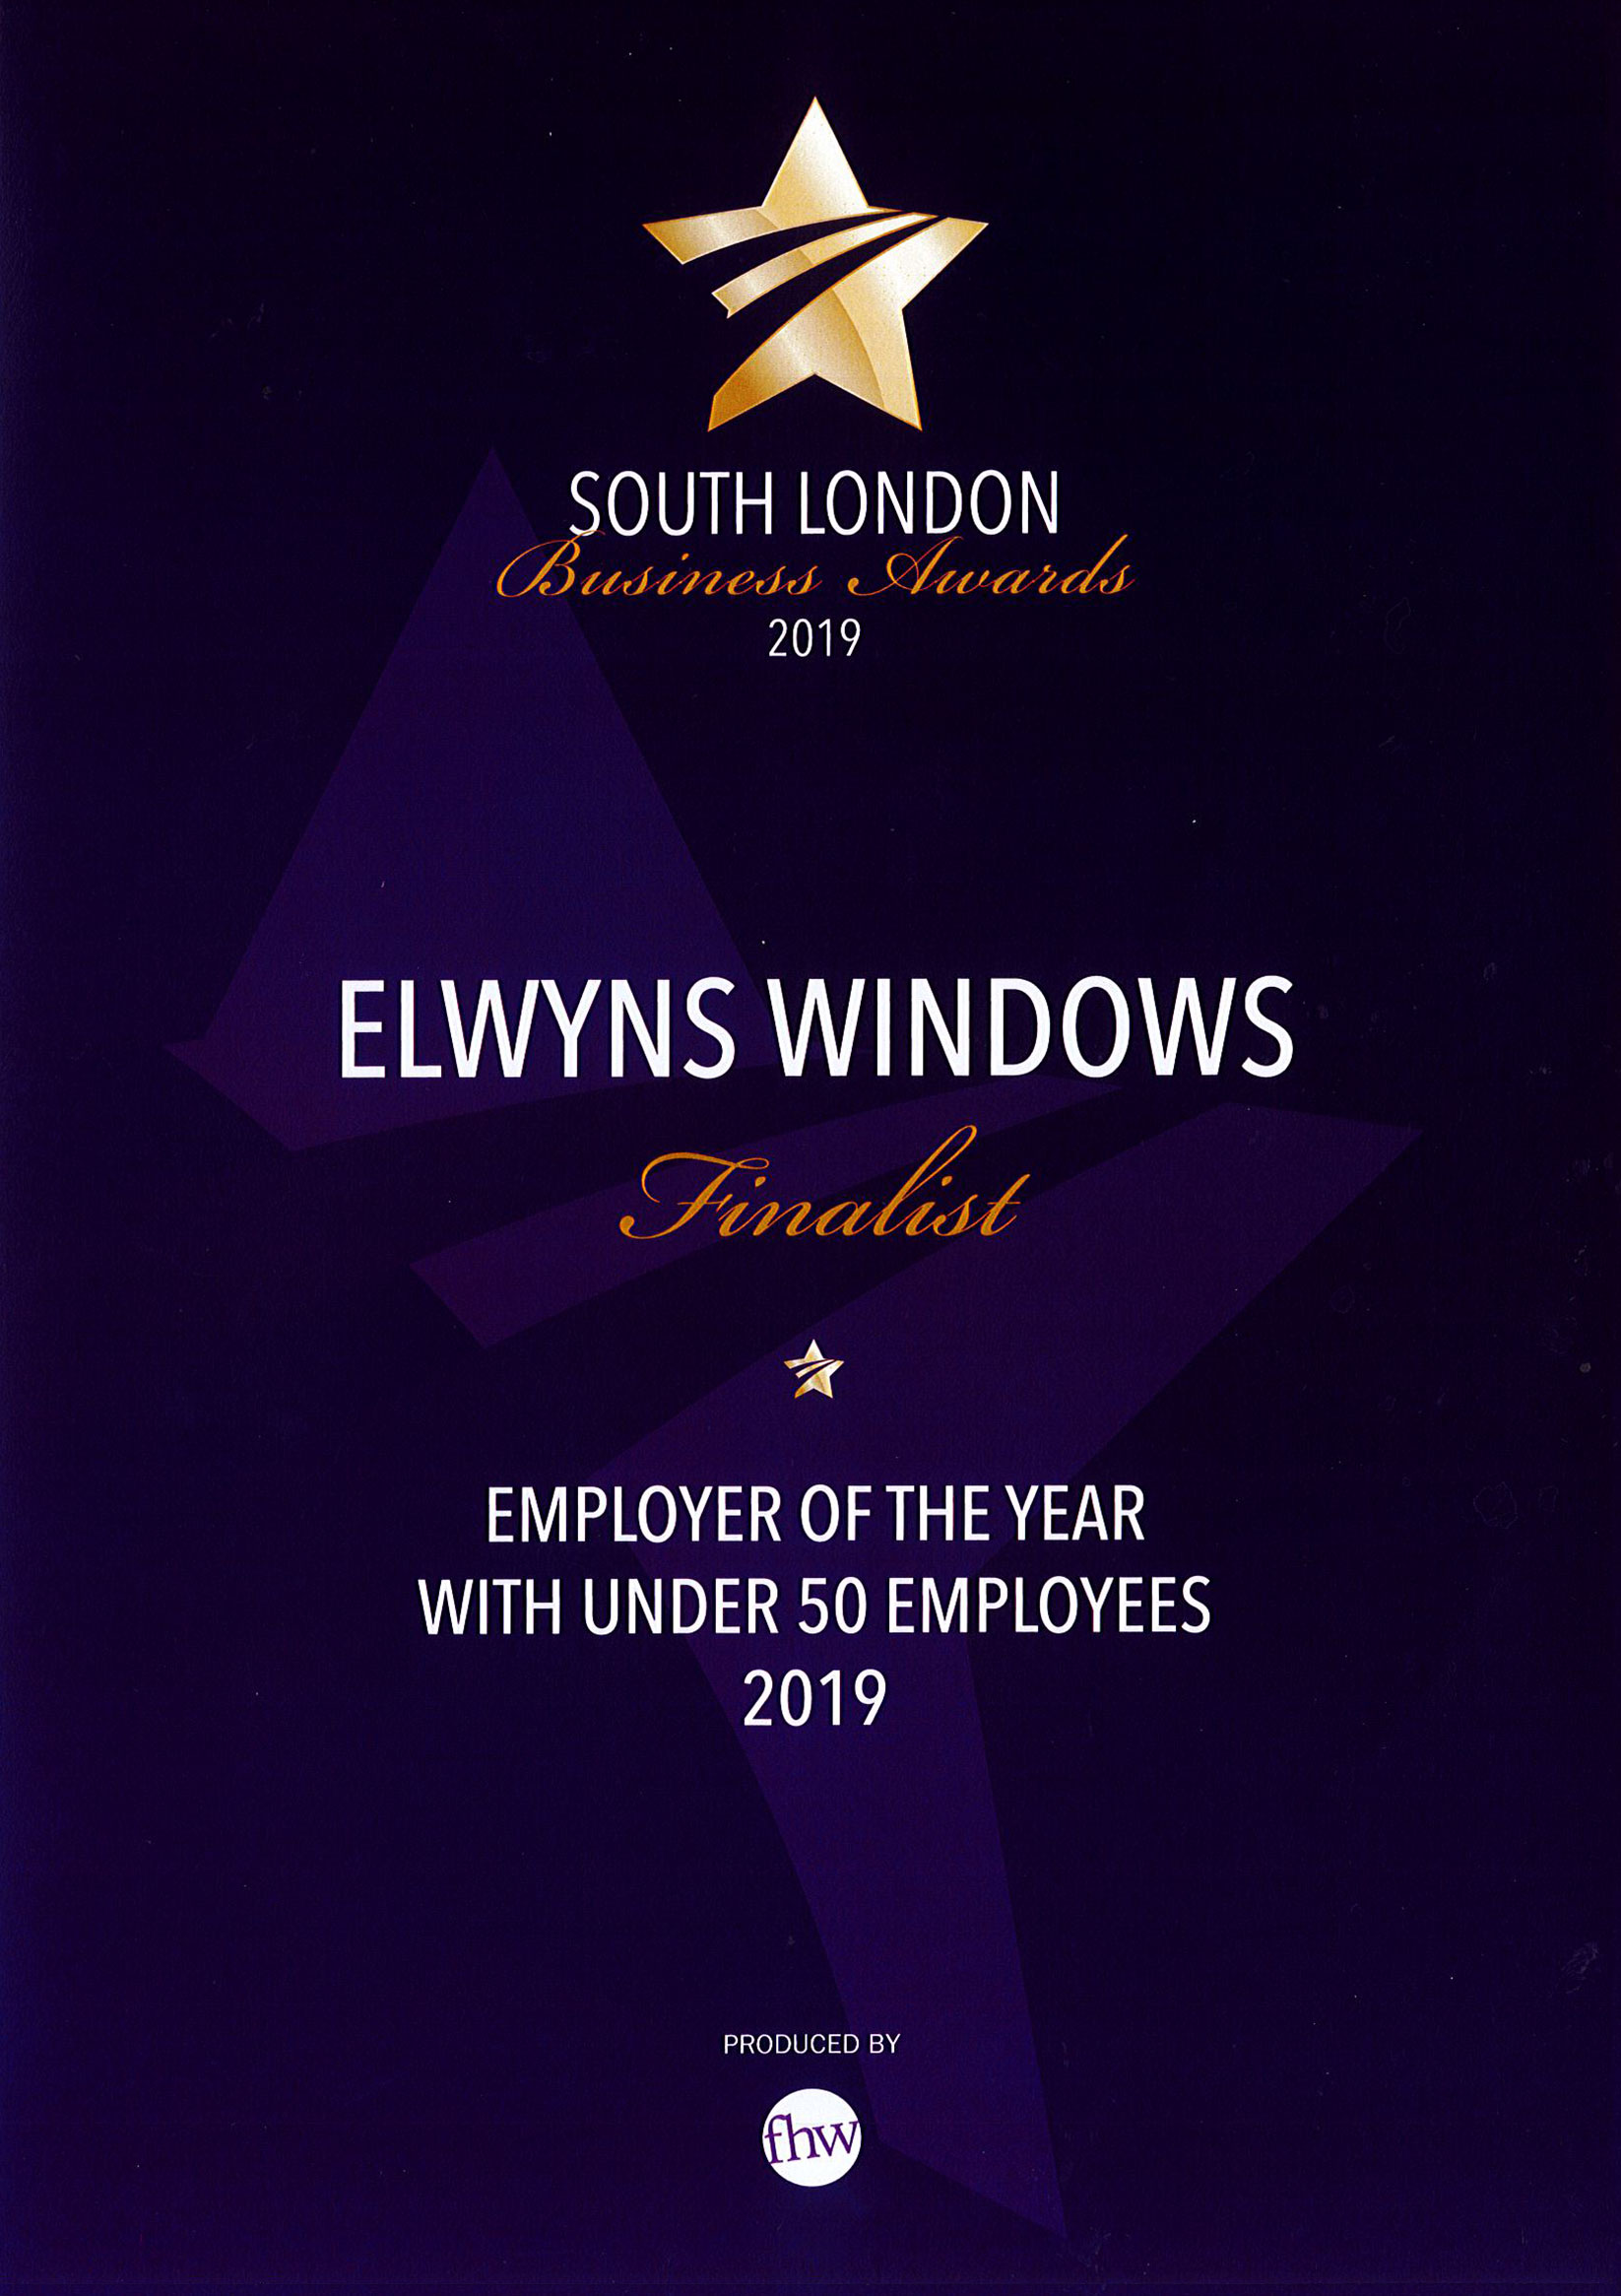 South London Business Awards 2019 - Employer of the Year with Under 50 Employees